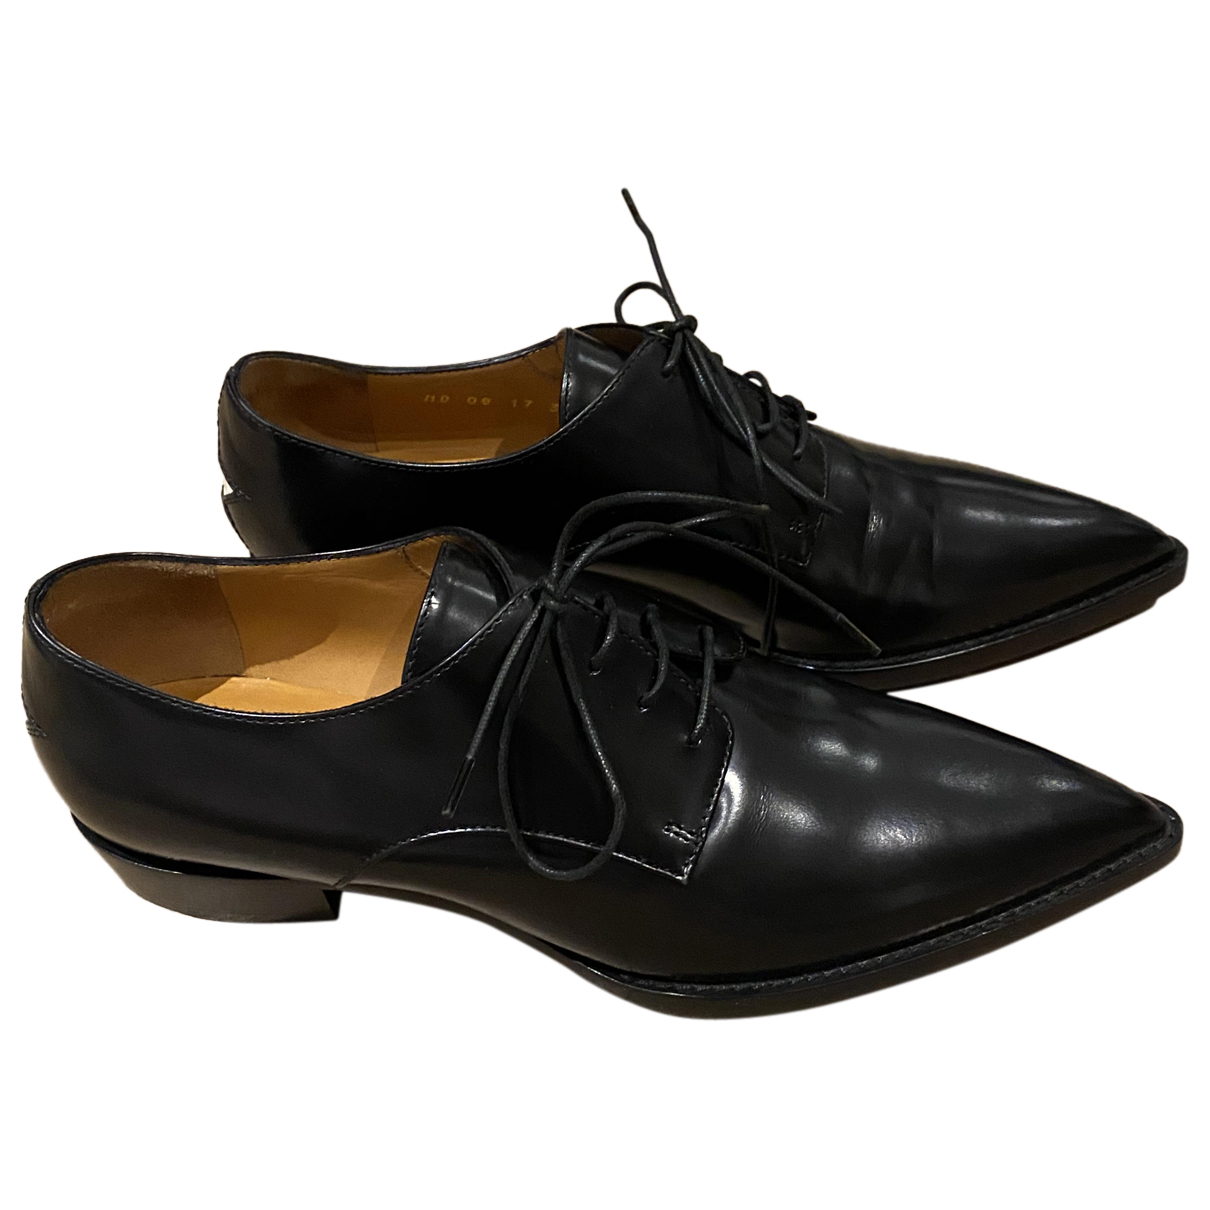 Dior N Black Leather Lace ups for Women 36.5 EU